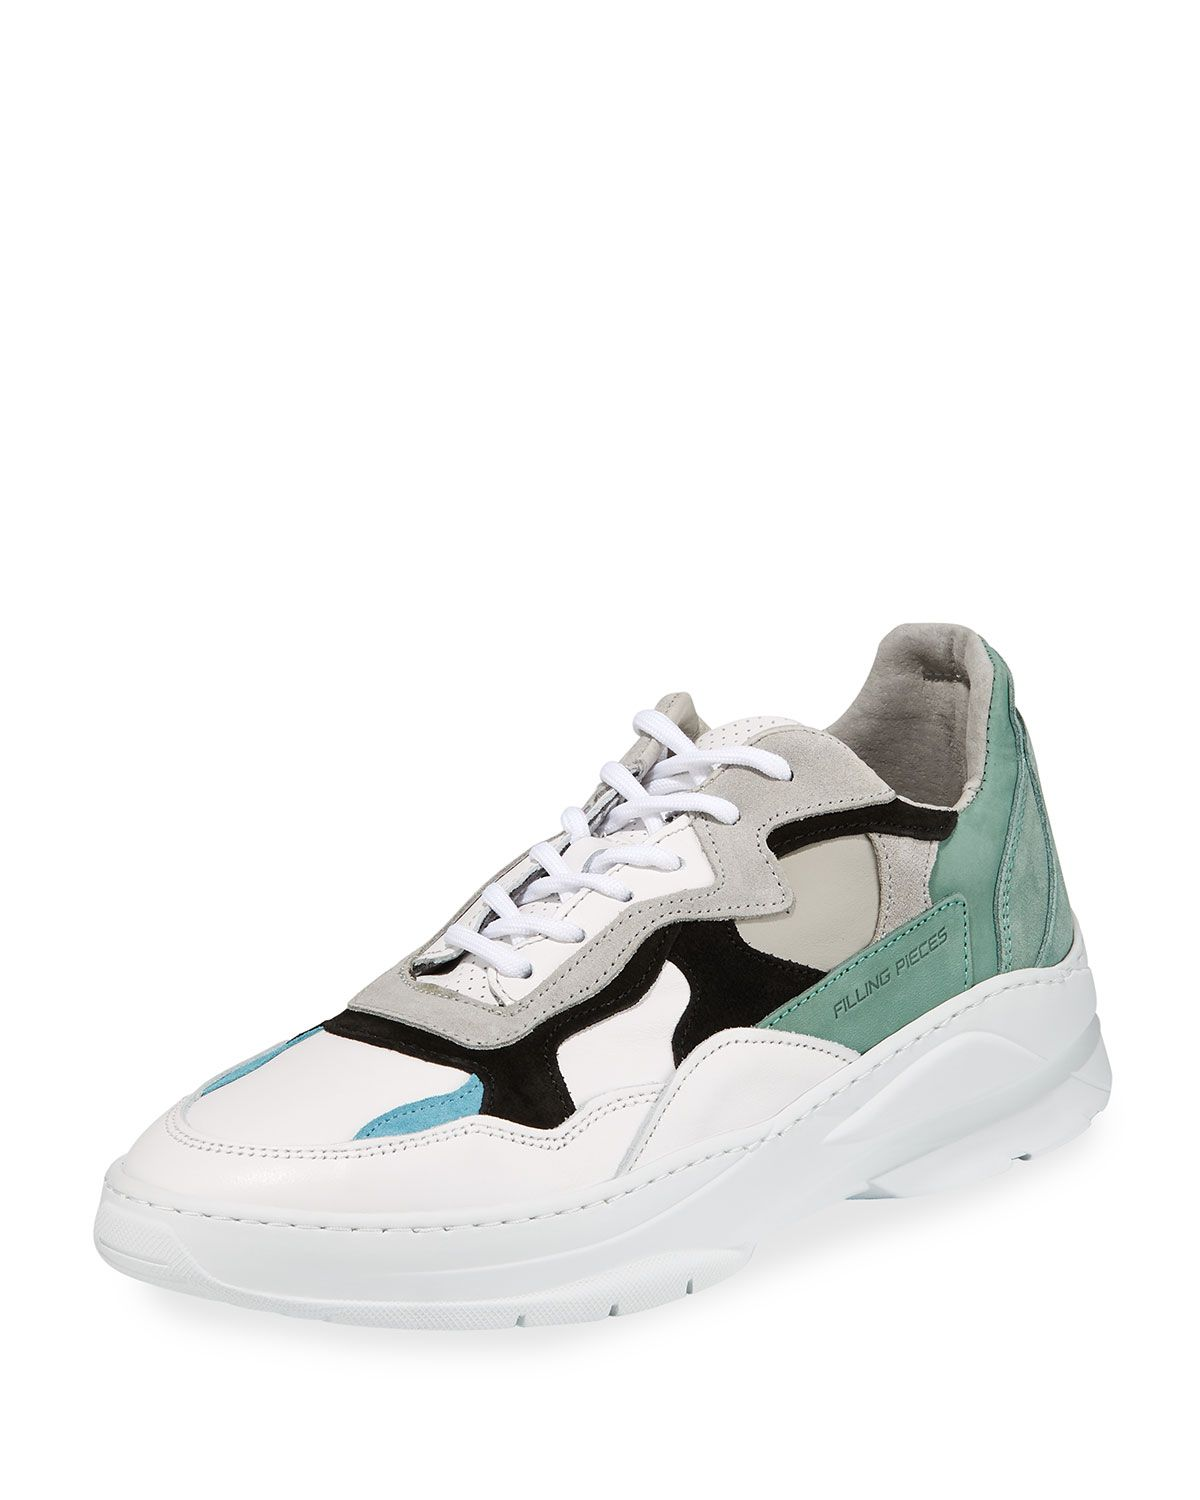 340ad14714ac FILLING PIECES MEN'S INFINITY LEATHER/SUEDE LOW-TOP SNEAKERS.  #fillingpieces #shoes